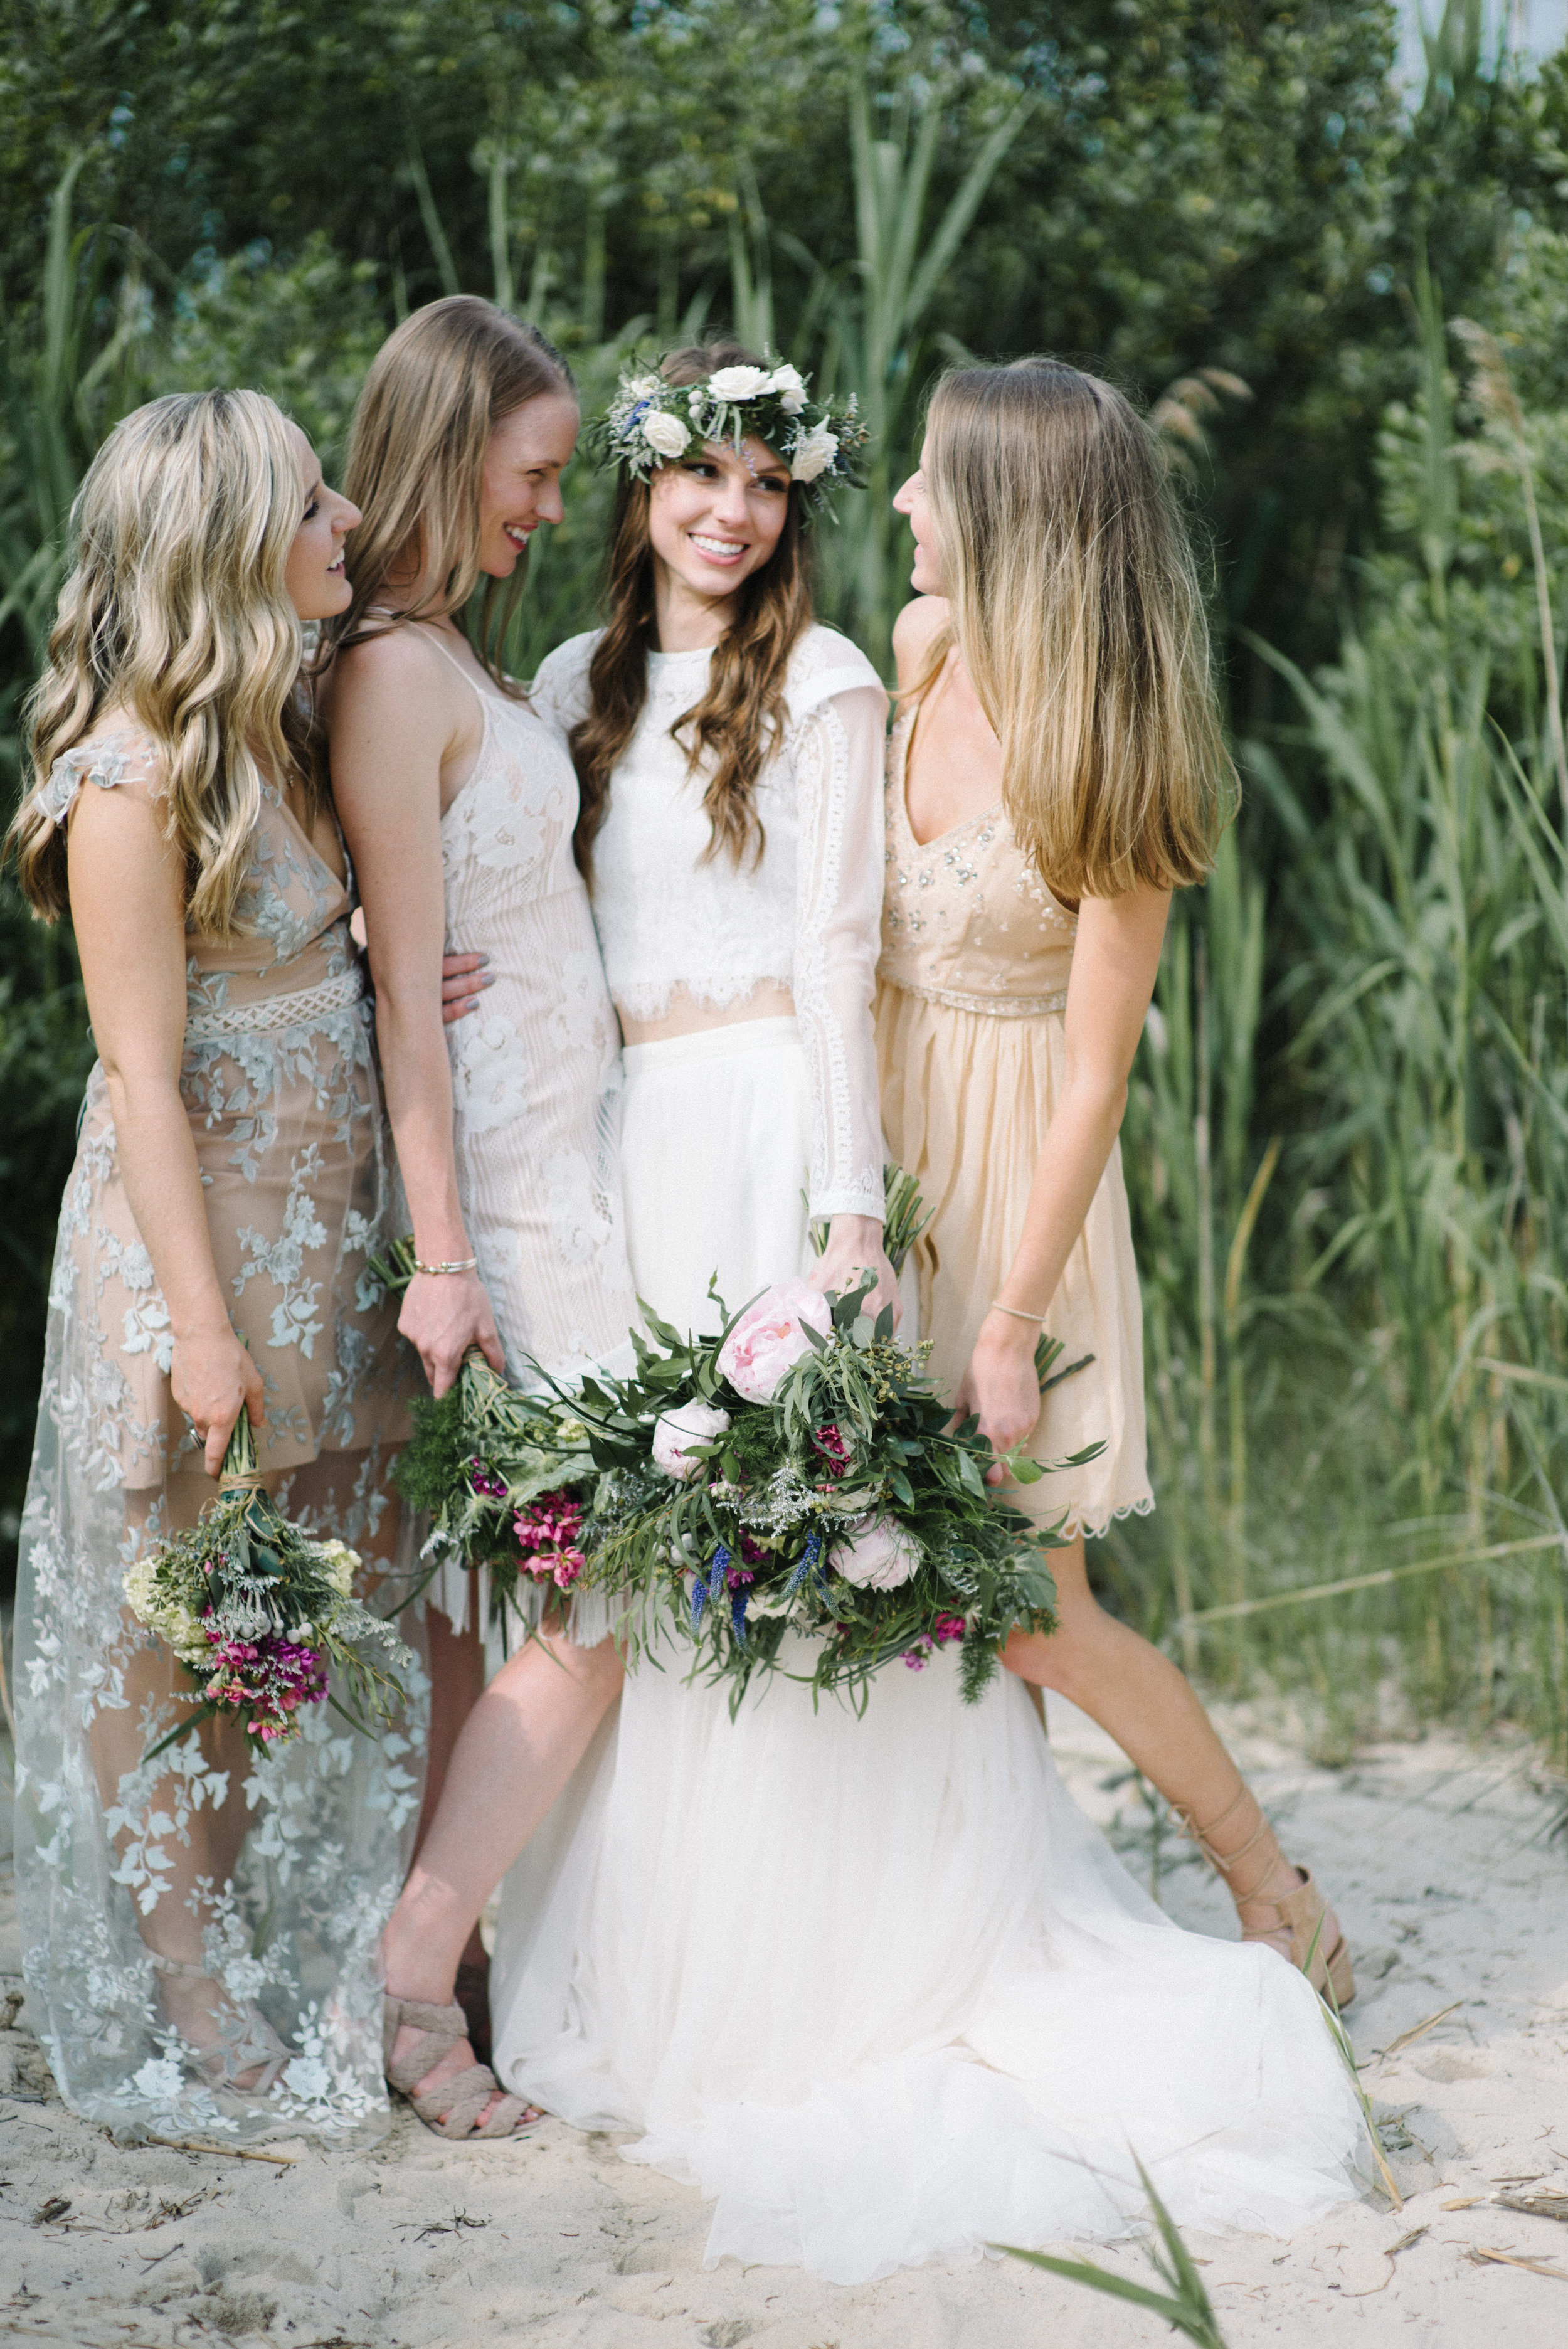 bridal-party-pictures-2.jpg